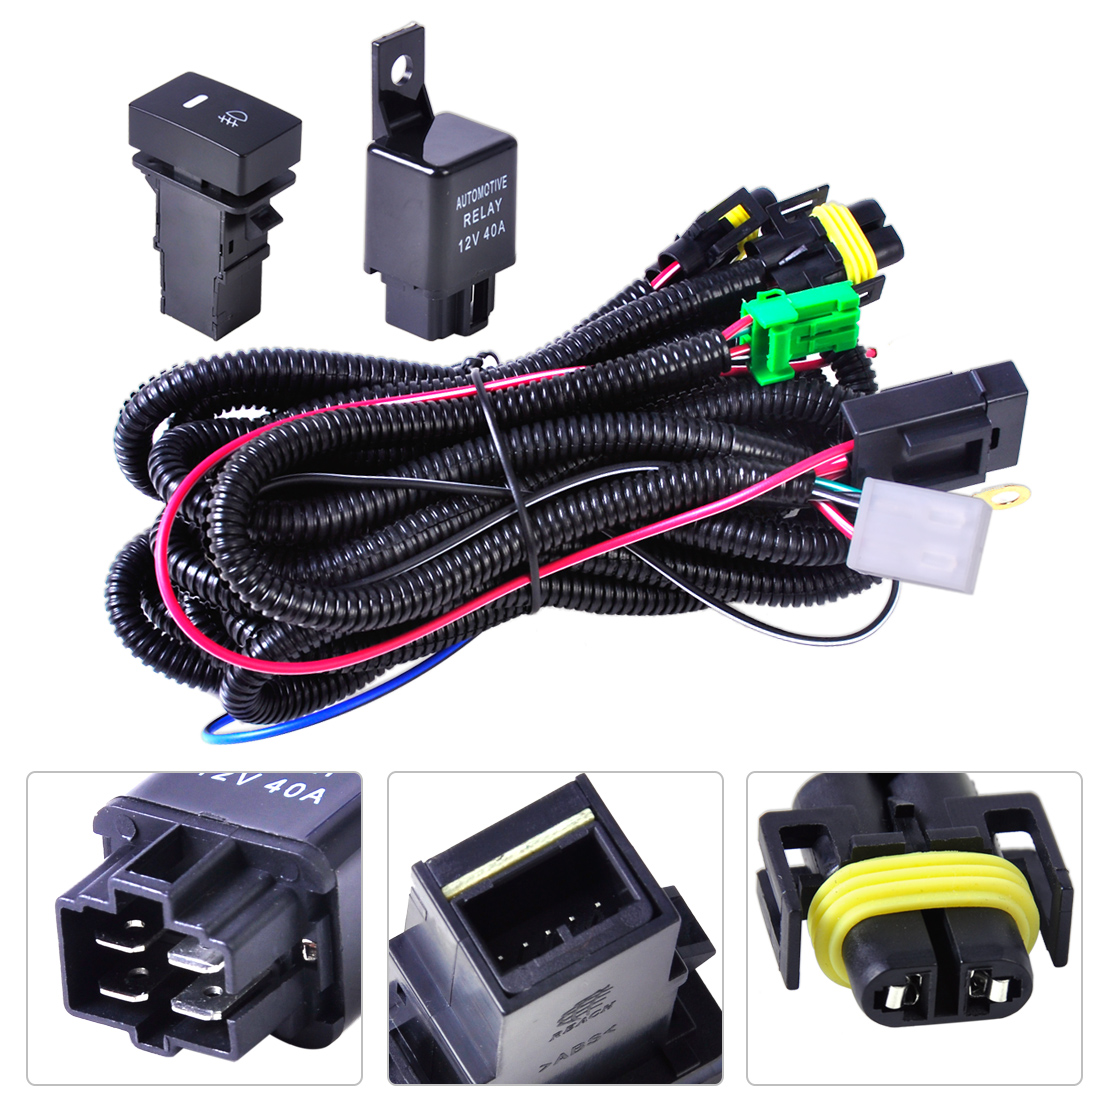 dwcx wiring harness sockets wire switch for h11 fog light 2005 silverado radio wiring harness wiring [ 1110 x 1110 Pixel ]